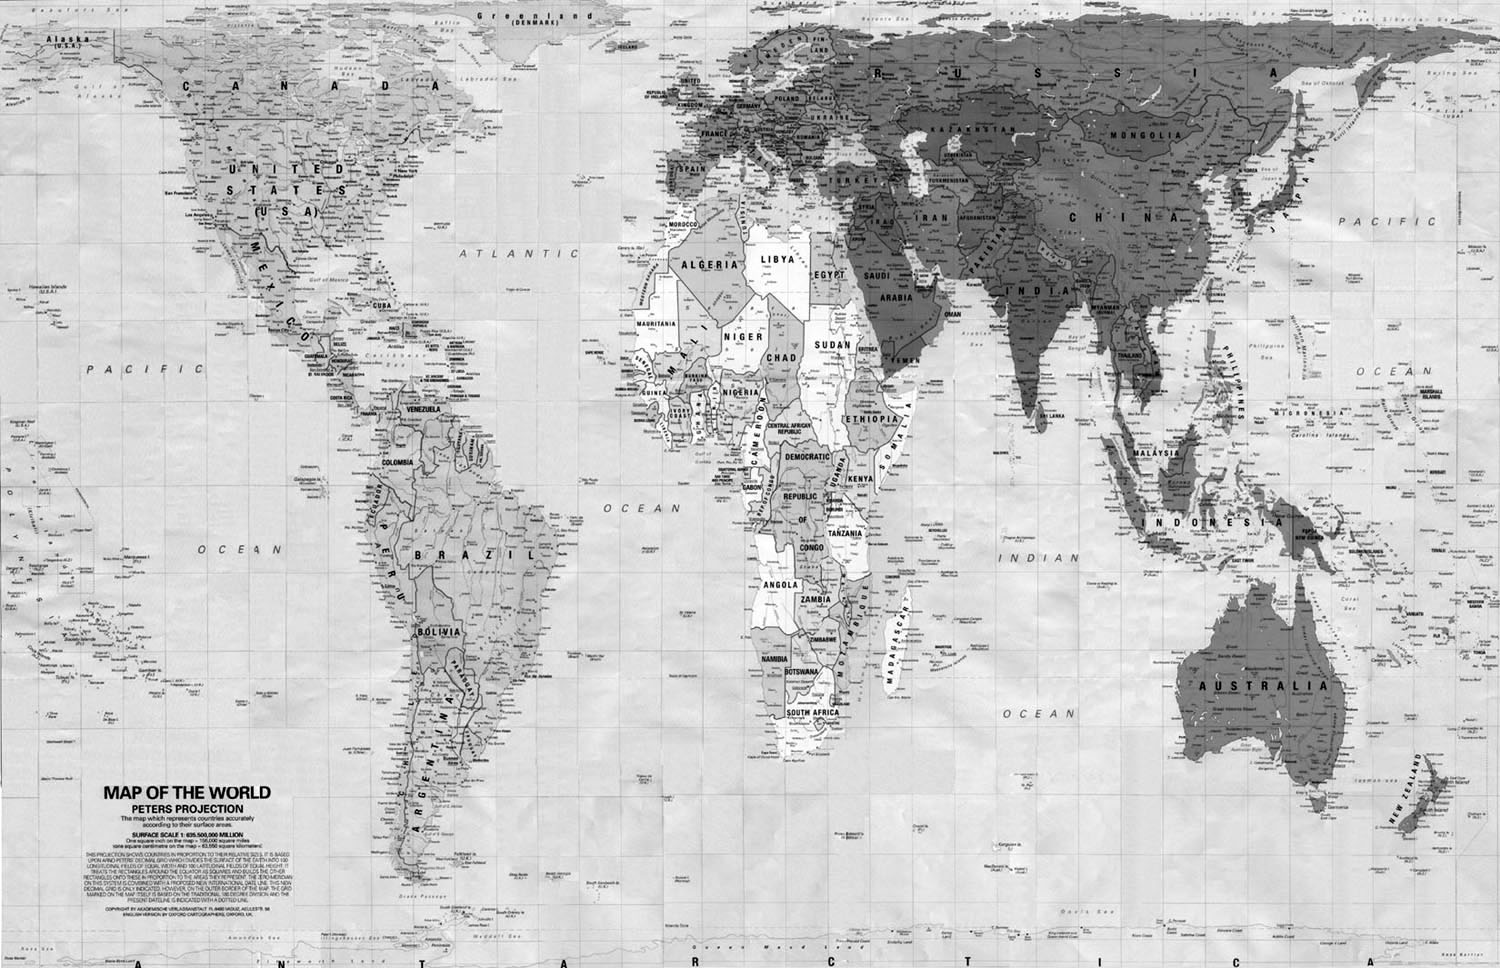 World Map Black And White Ideas Small Bathroom Images Of Remodels.